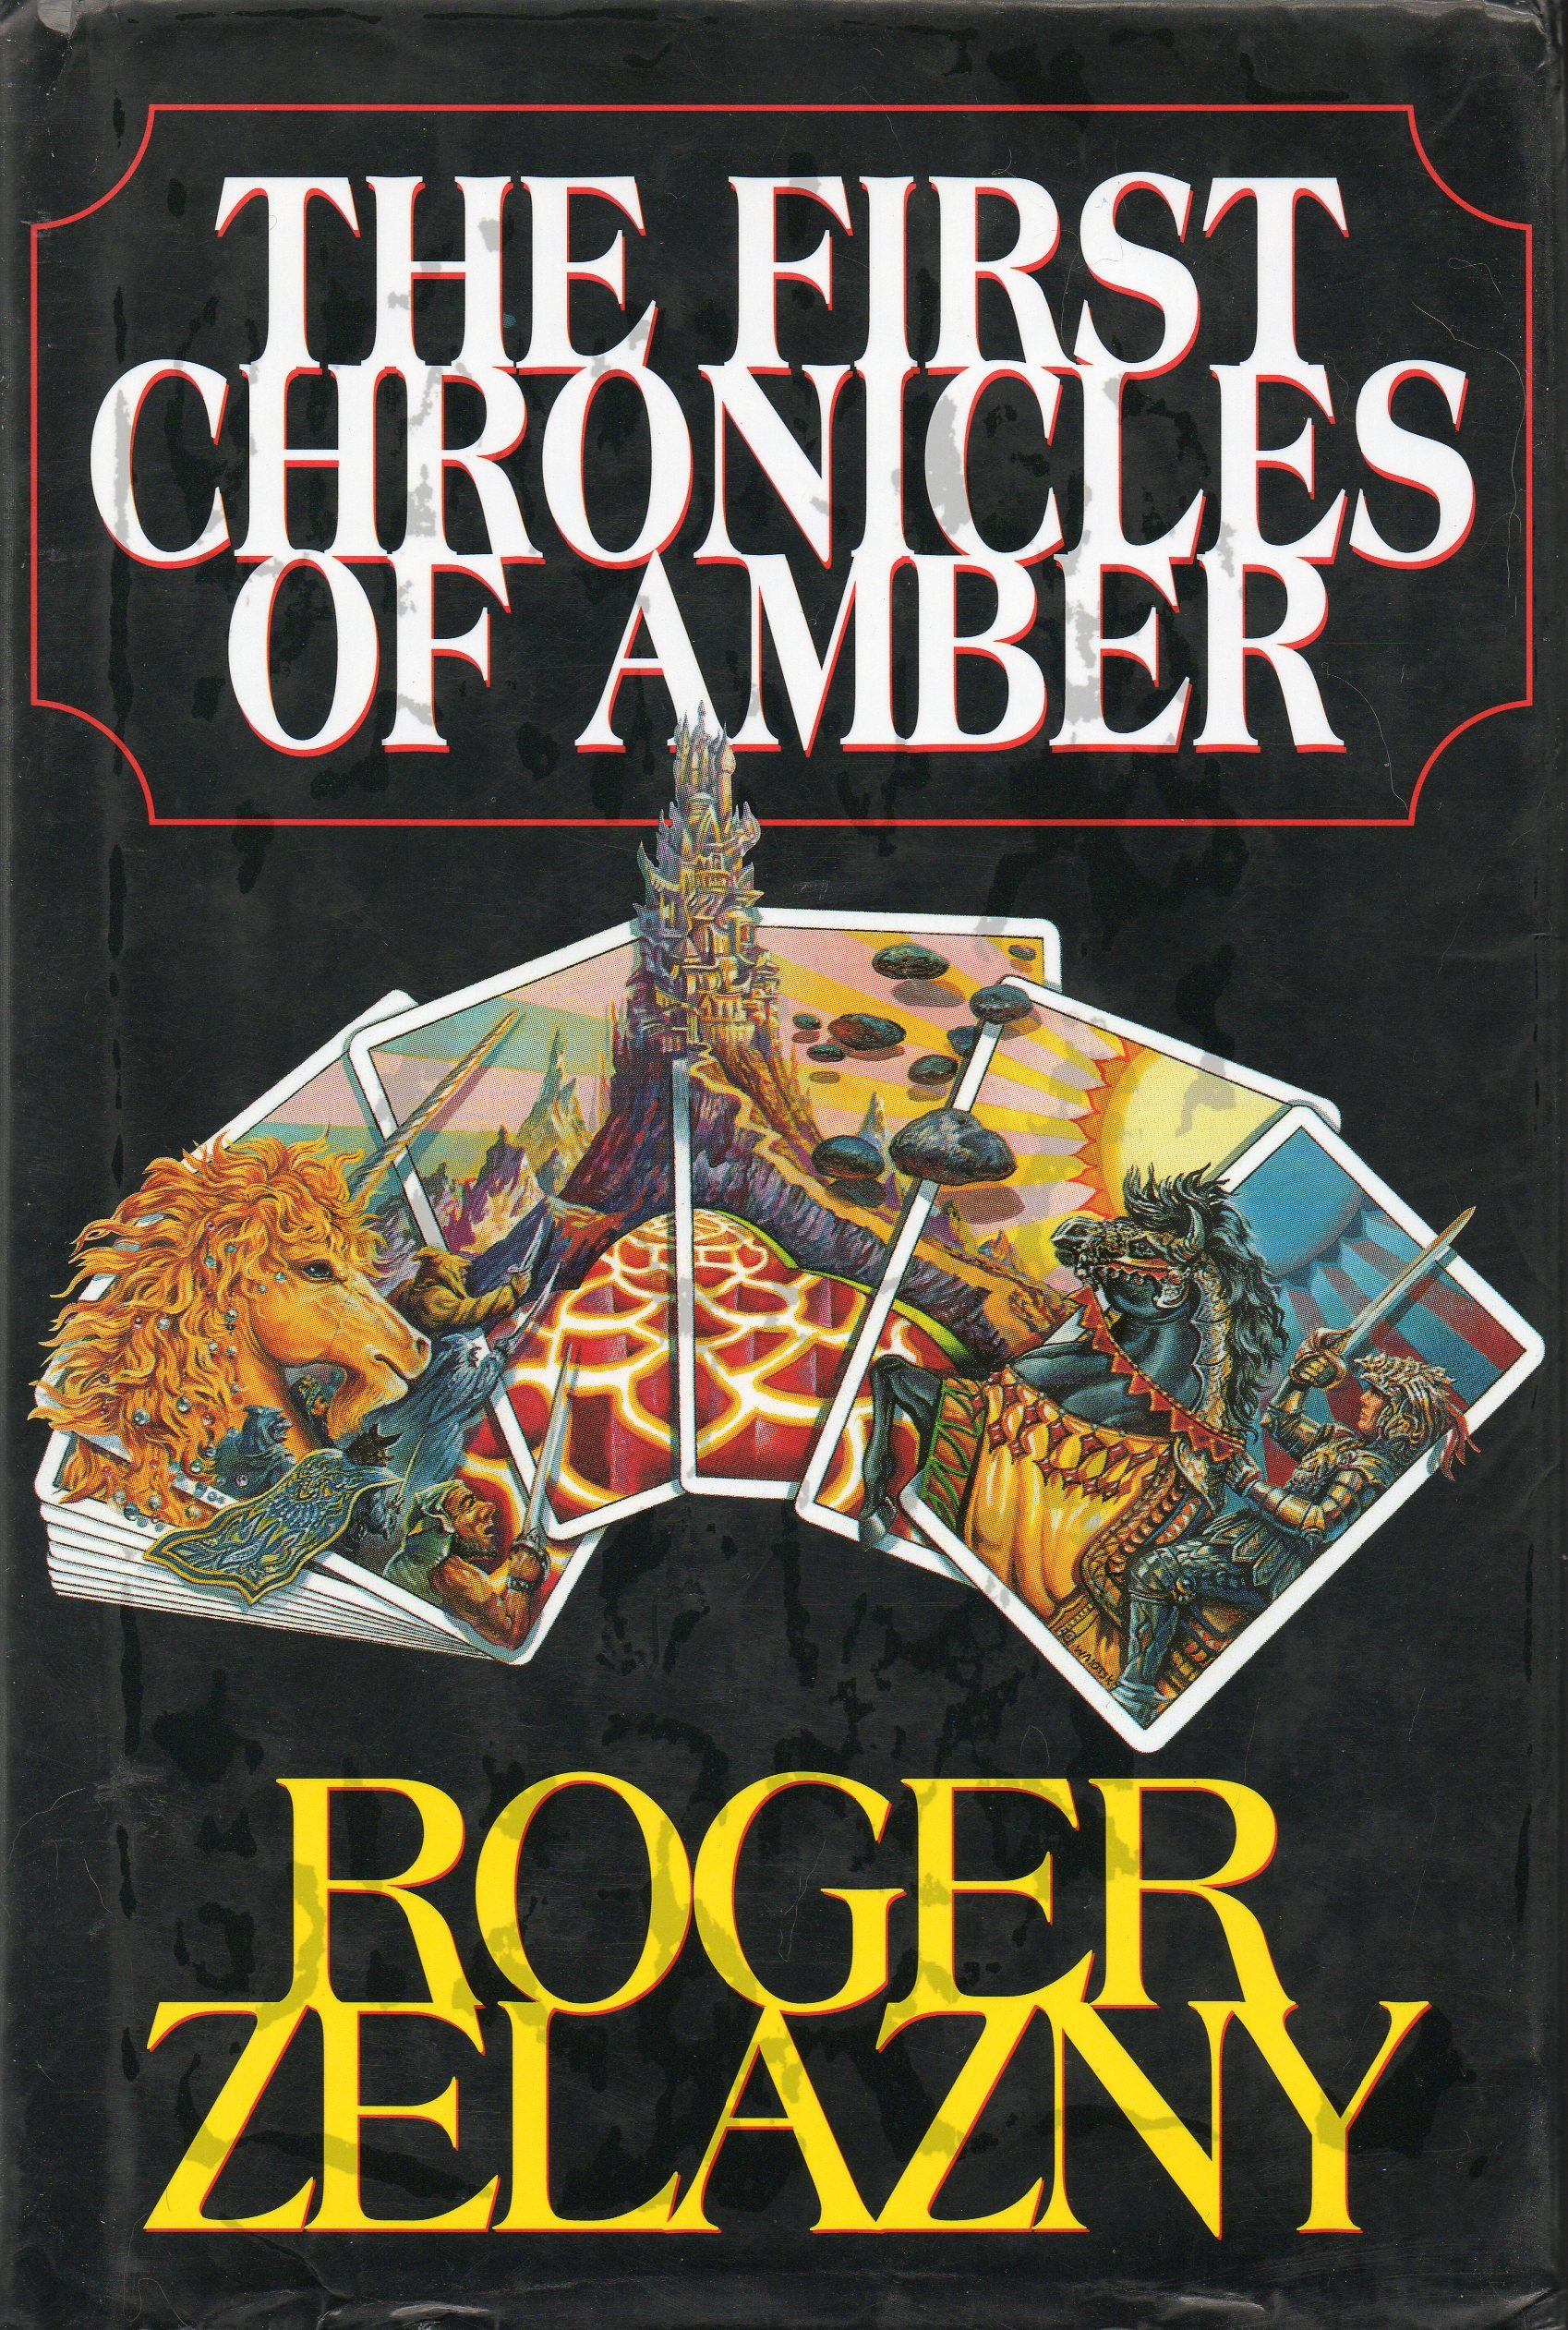 The First Chronicles of Amber: Nine Princes in Amber, The Guns of Avalon,  Sign of the Unicorn, The Hand of Oberon, The Courts of Chaos: Roger Zelazny,  ...